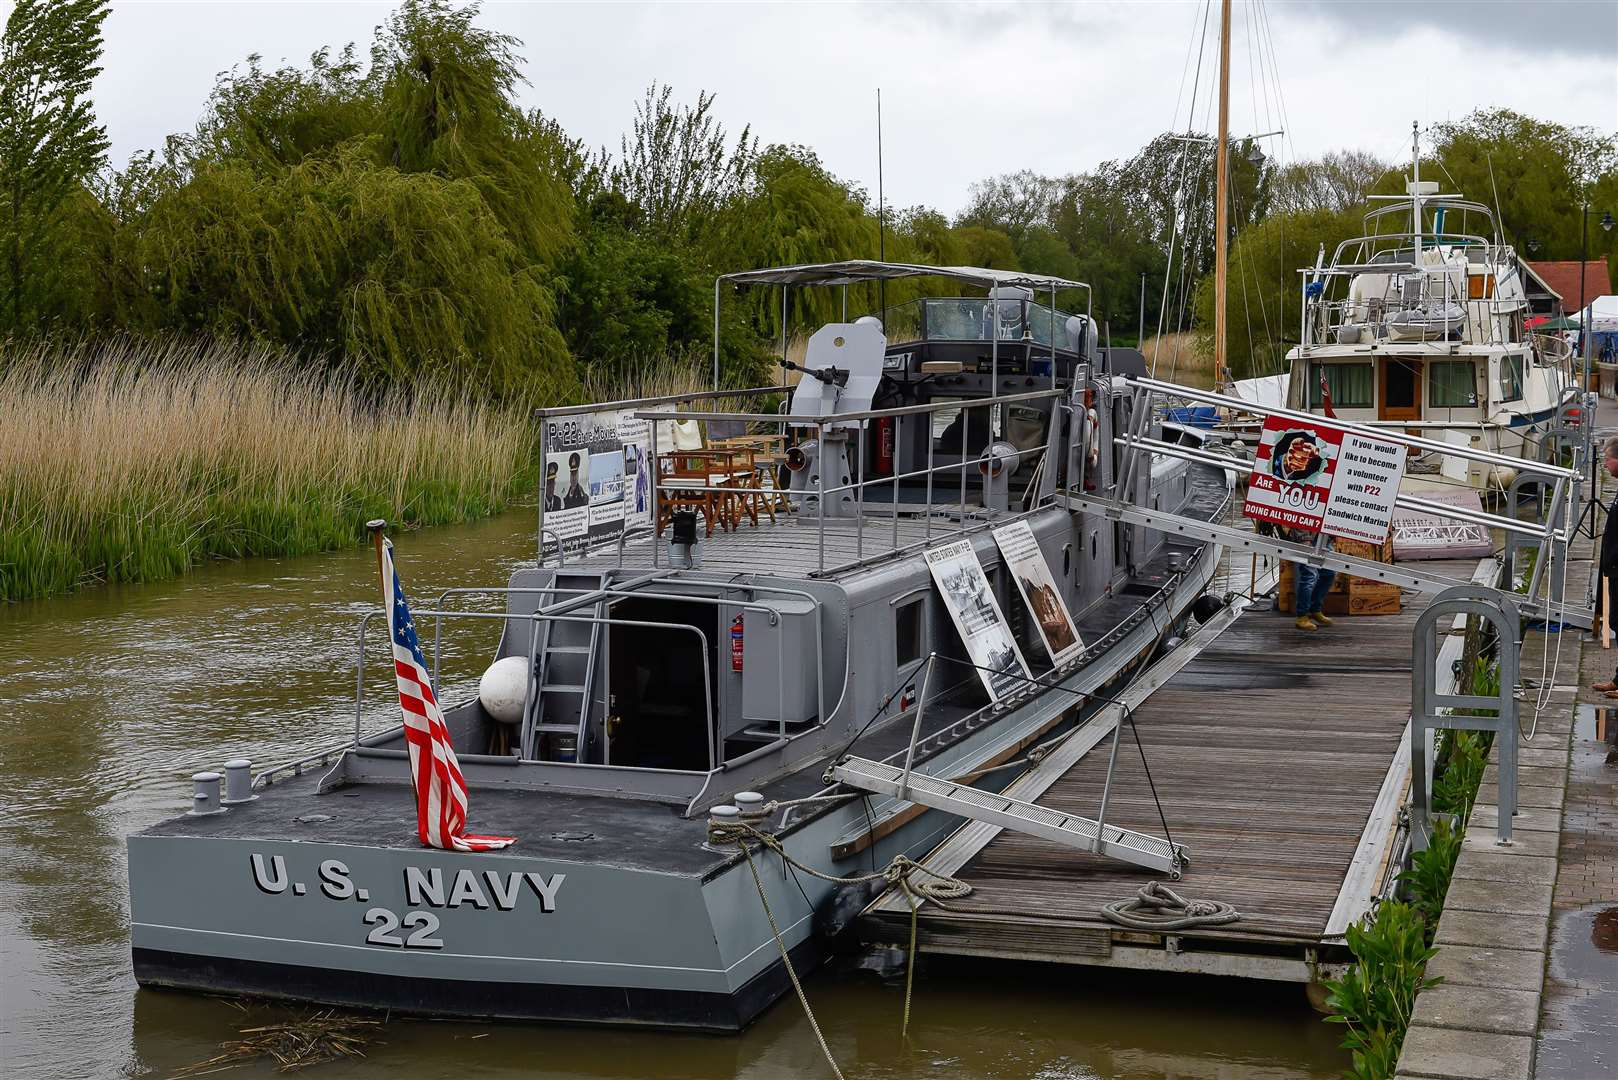 The P22 Gunboat on Sandwich Quay was used by the US Navy